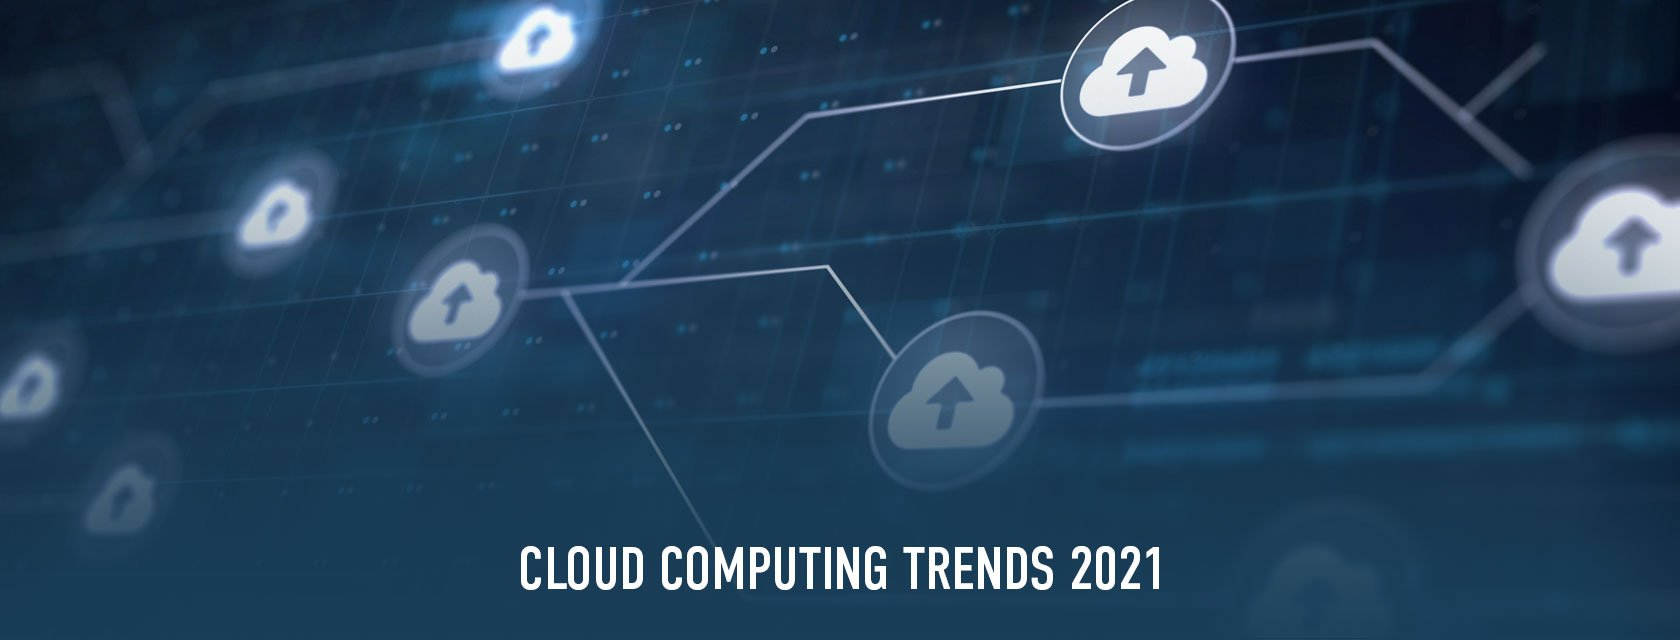 Cloud Computing Trends 2021 – The top 7 emerging disruptions you should know